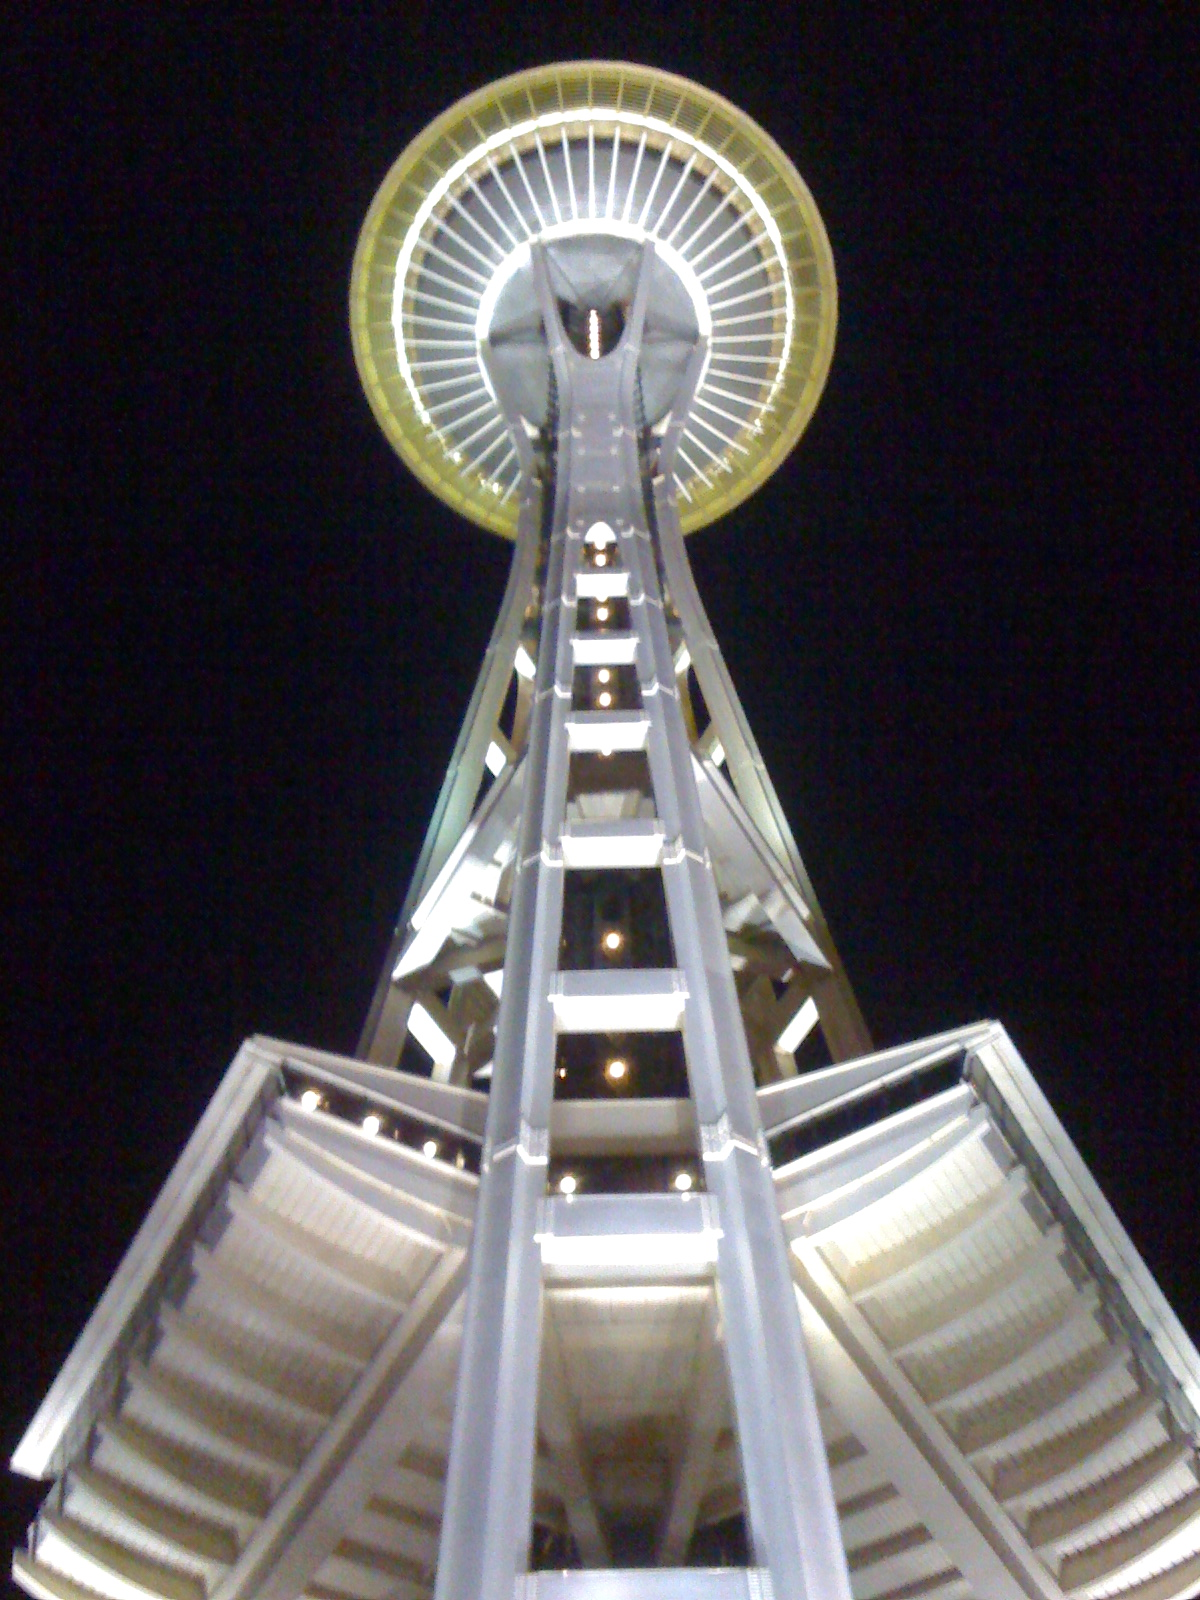 View from the base of the Space Needle at night.  Photo by Rebecca Garland.